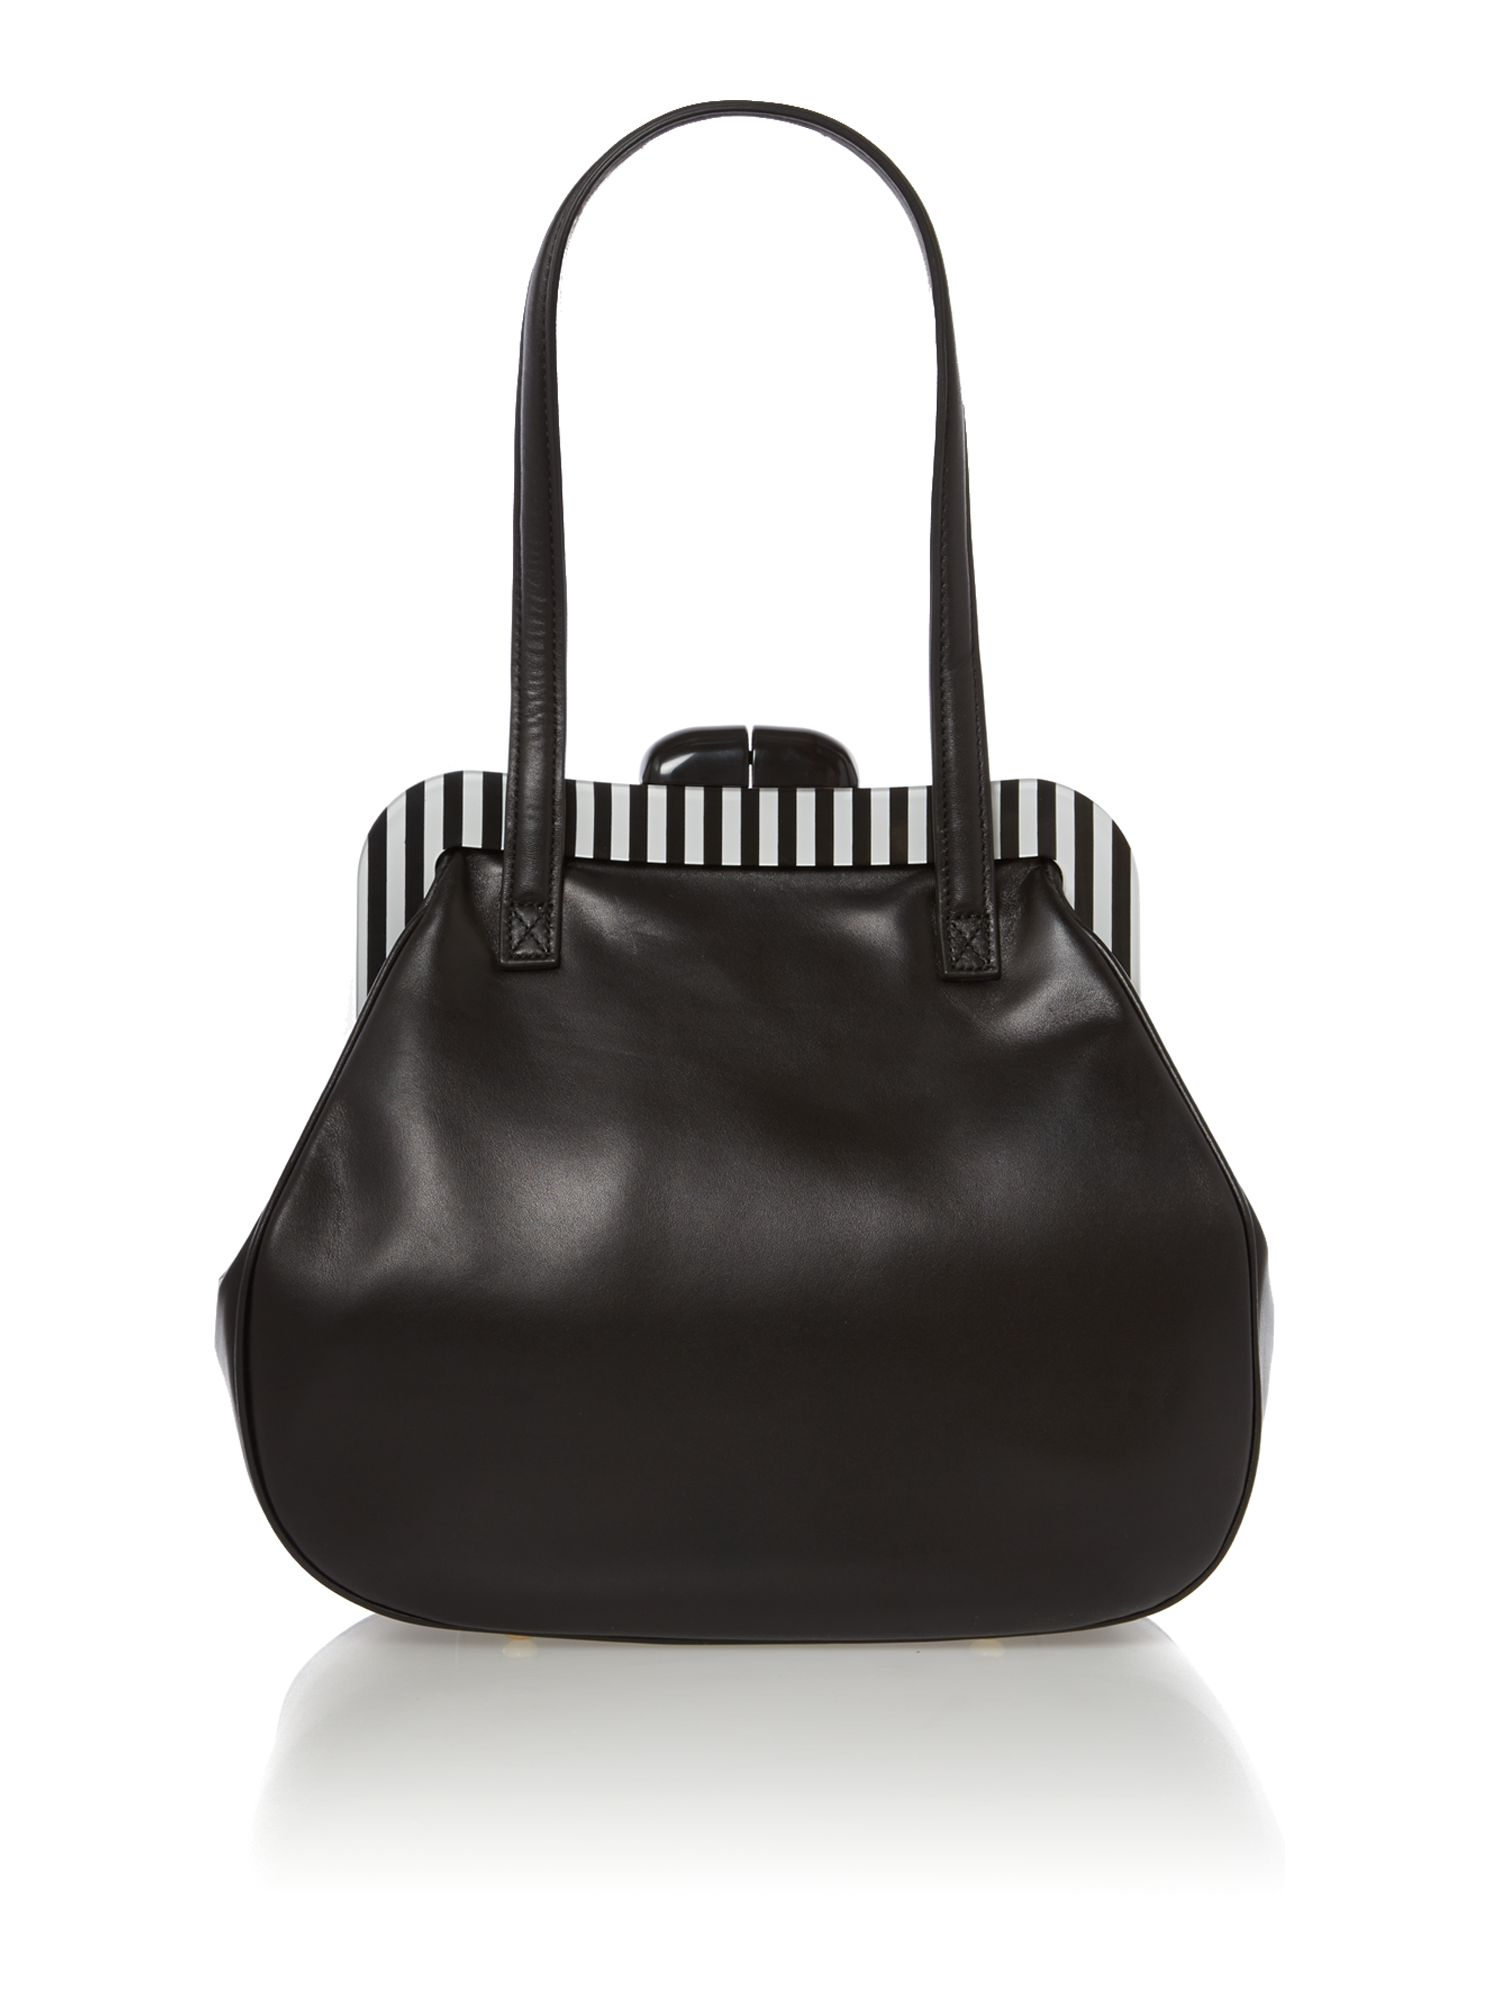 Pollyanna patent black shoulder bag